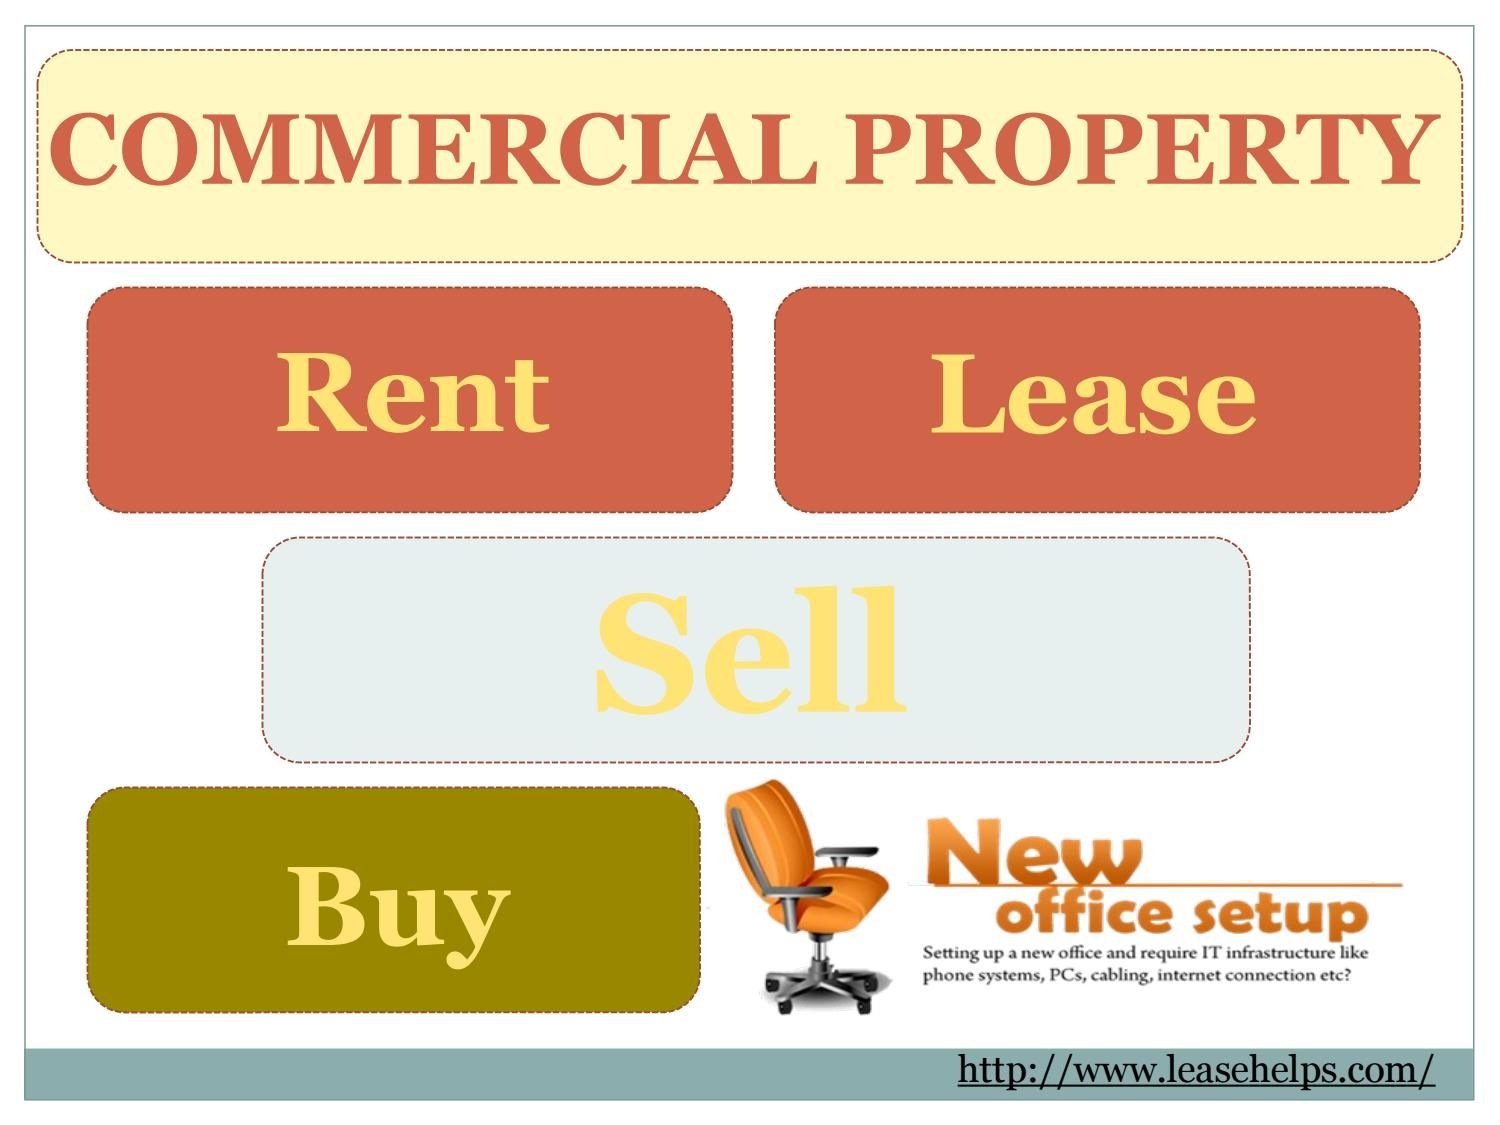 Required Commercial Office Space For Lease With Images Commercial Office Space Commercial Office Commercial